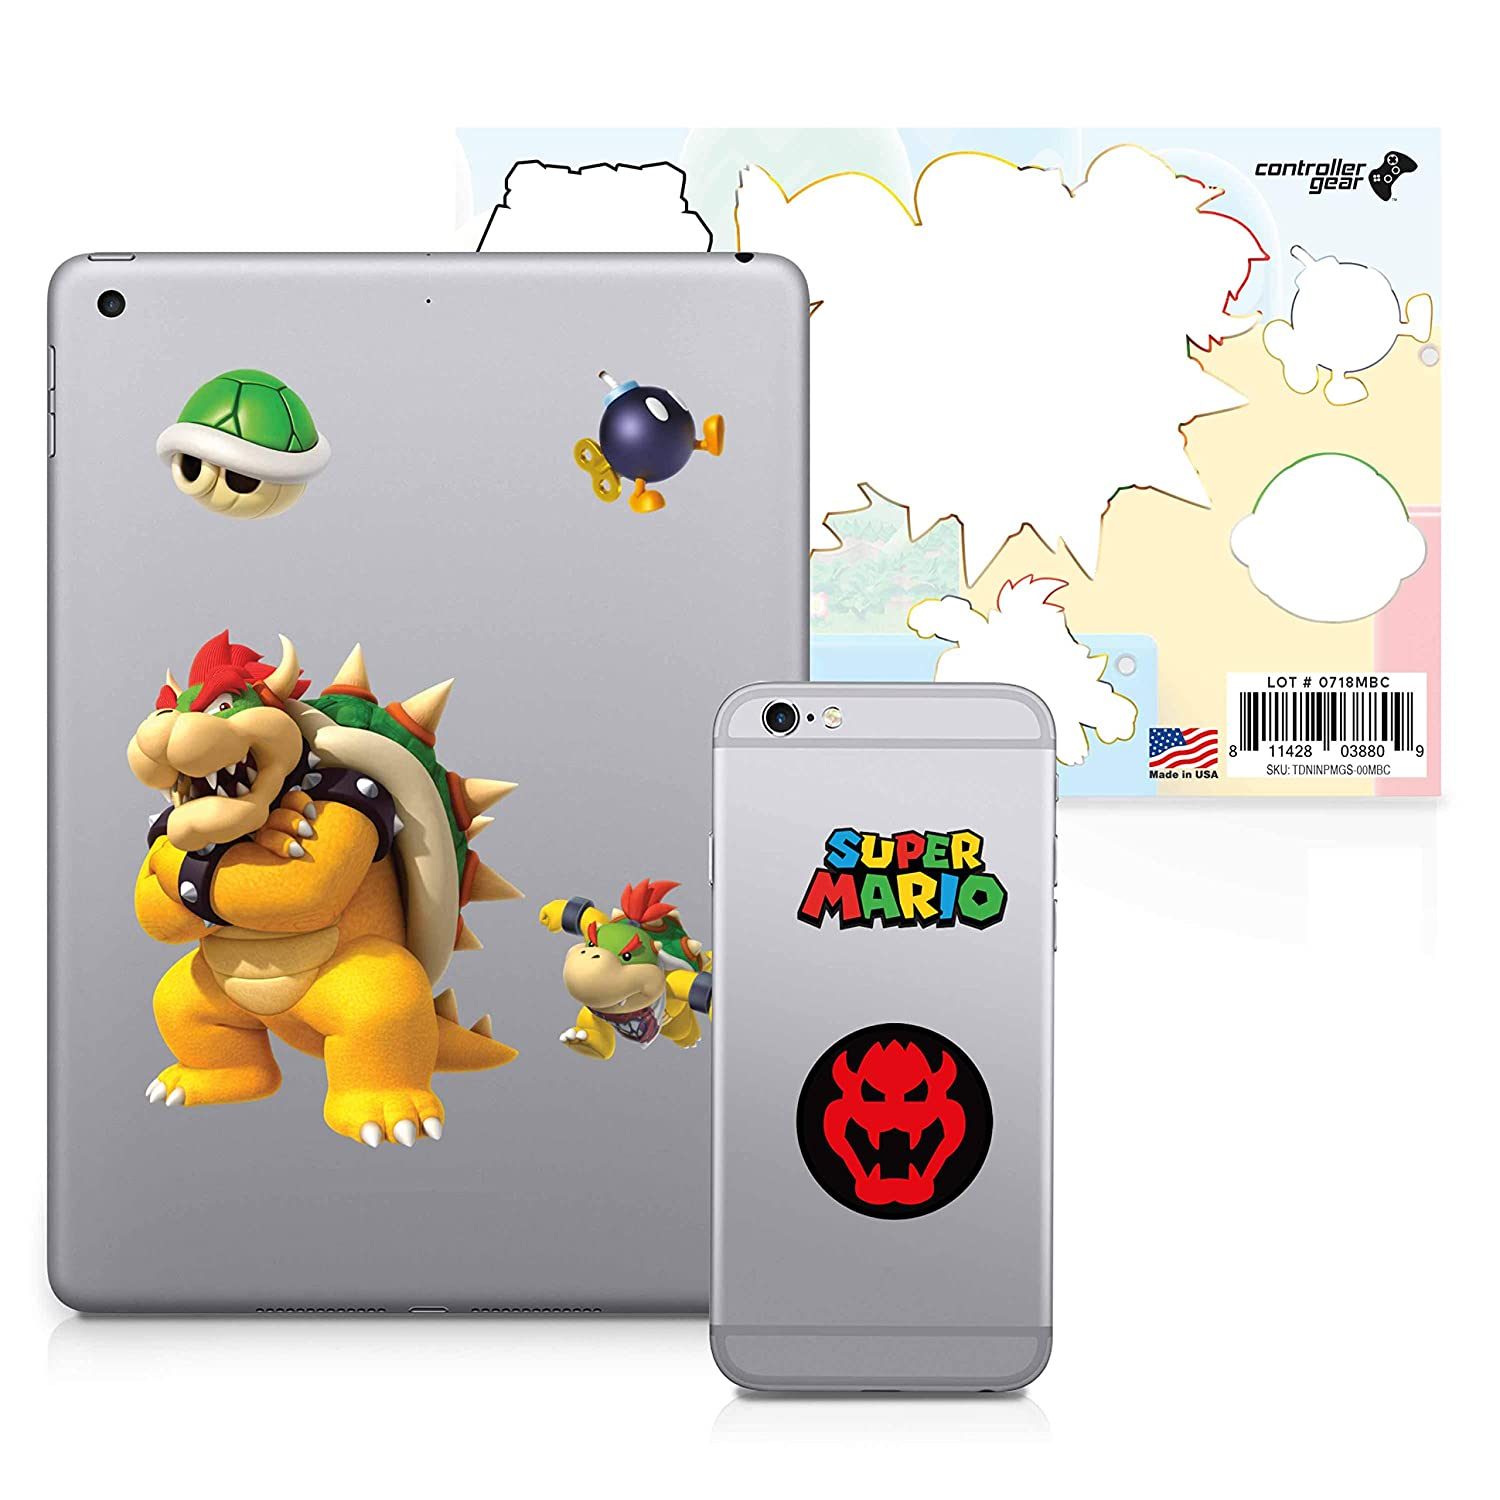 Super Mario, 6 Pack, Bowser Tech Decals, Waterproof Stickers for Phone, Laptop, Water Bottle, Skateboard, Vinyl Stickers for Boys and Girls